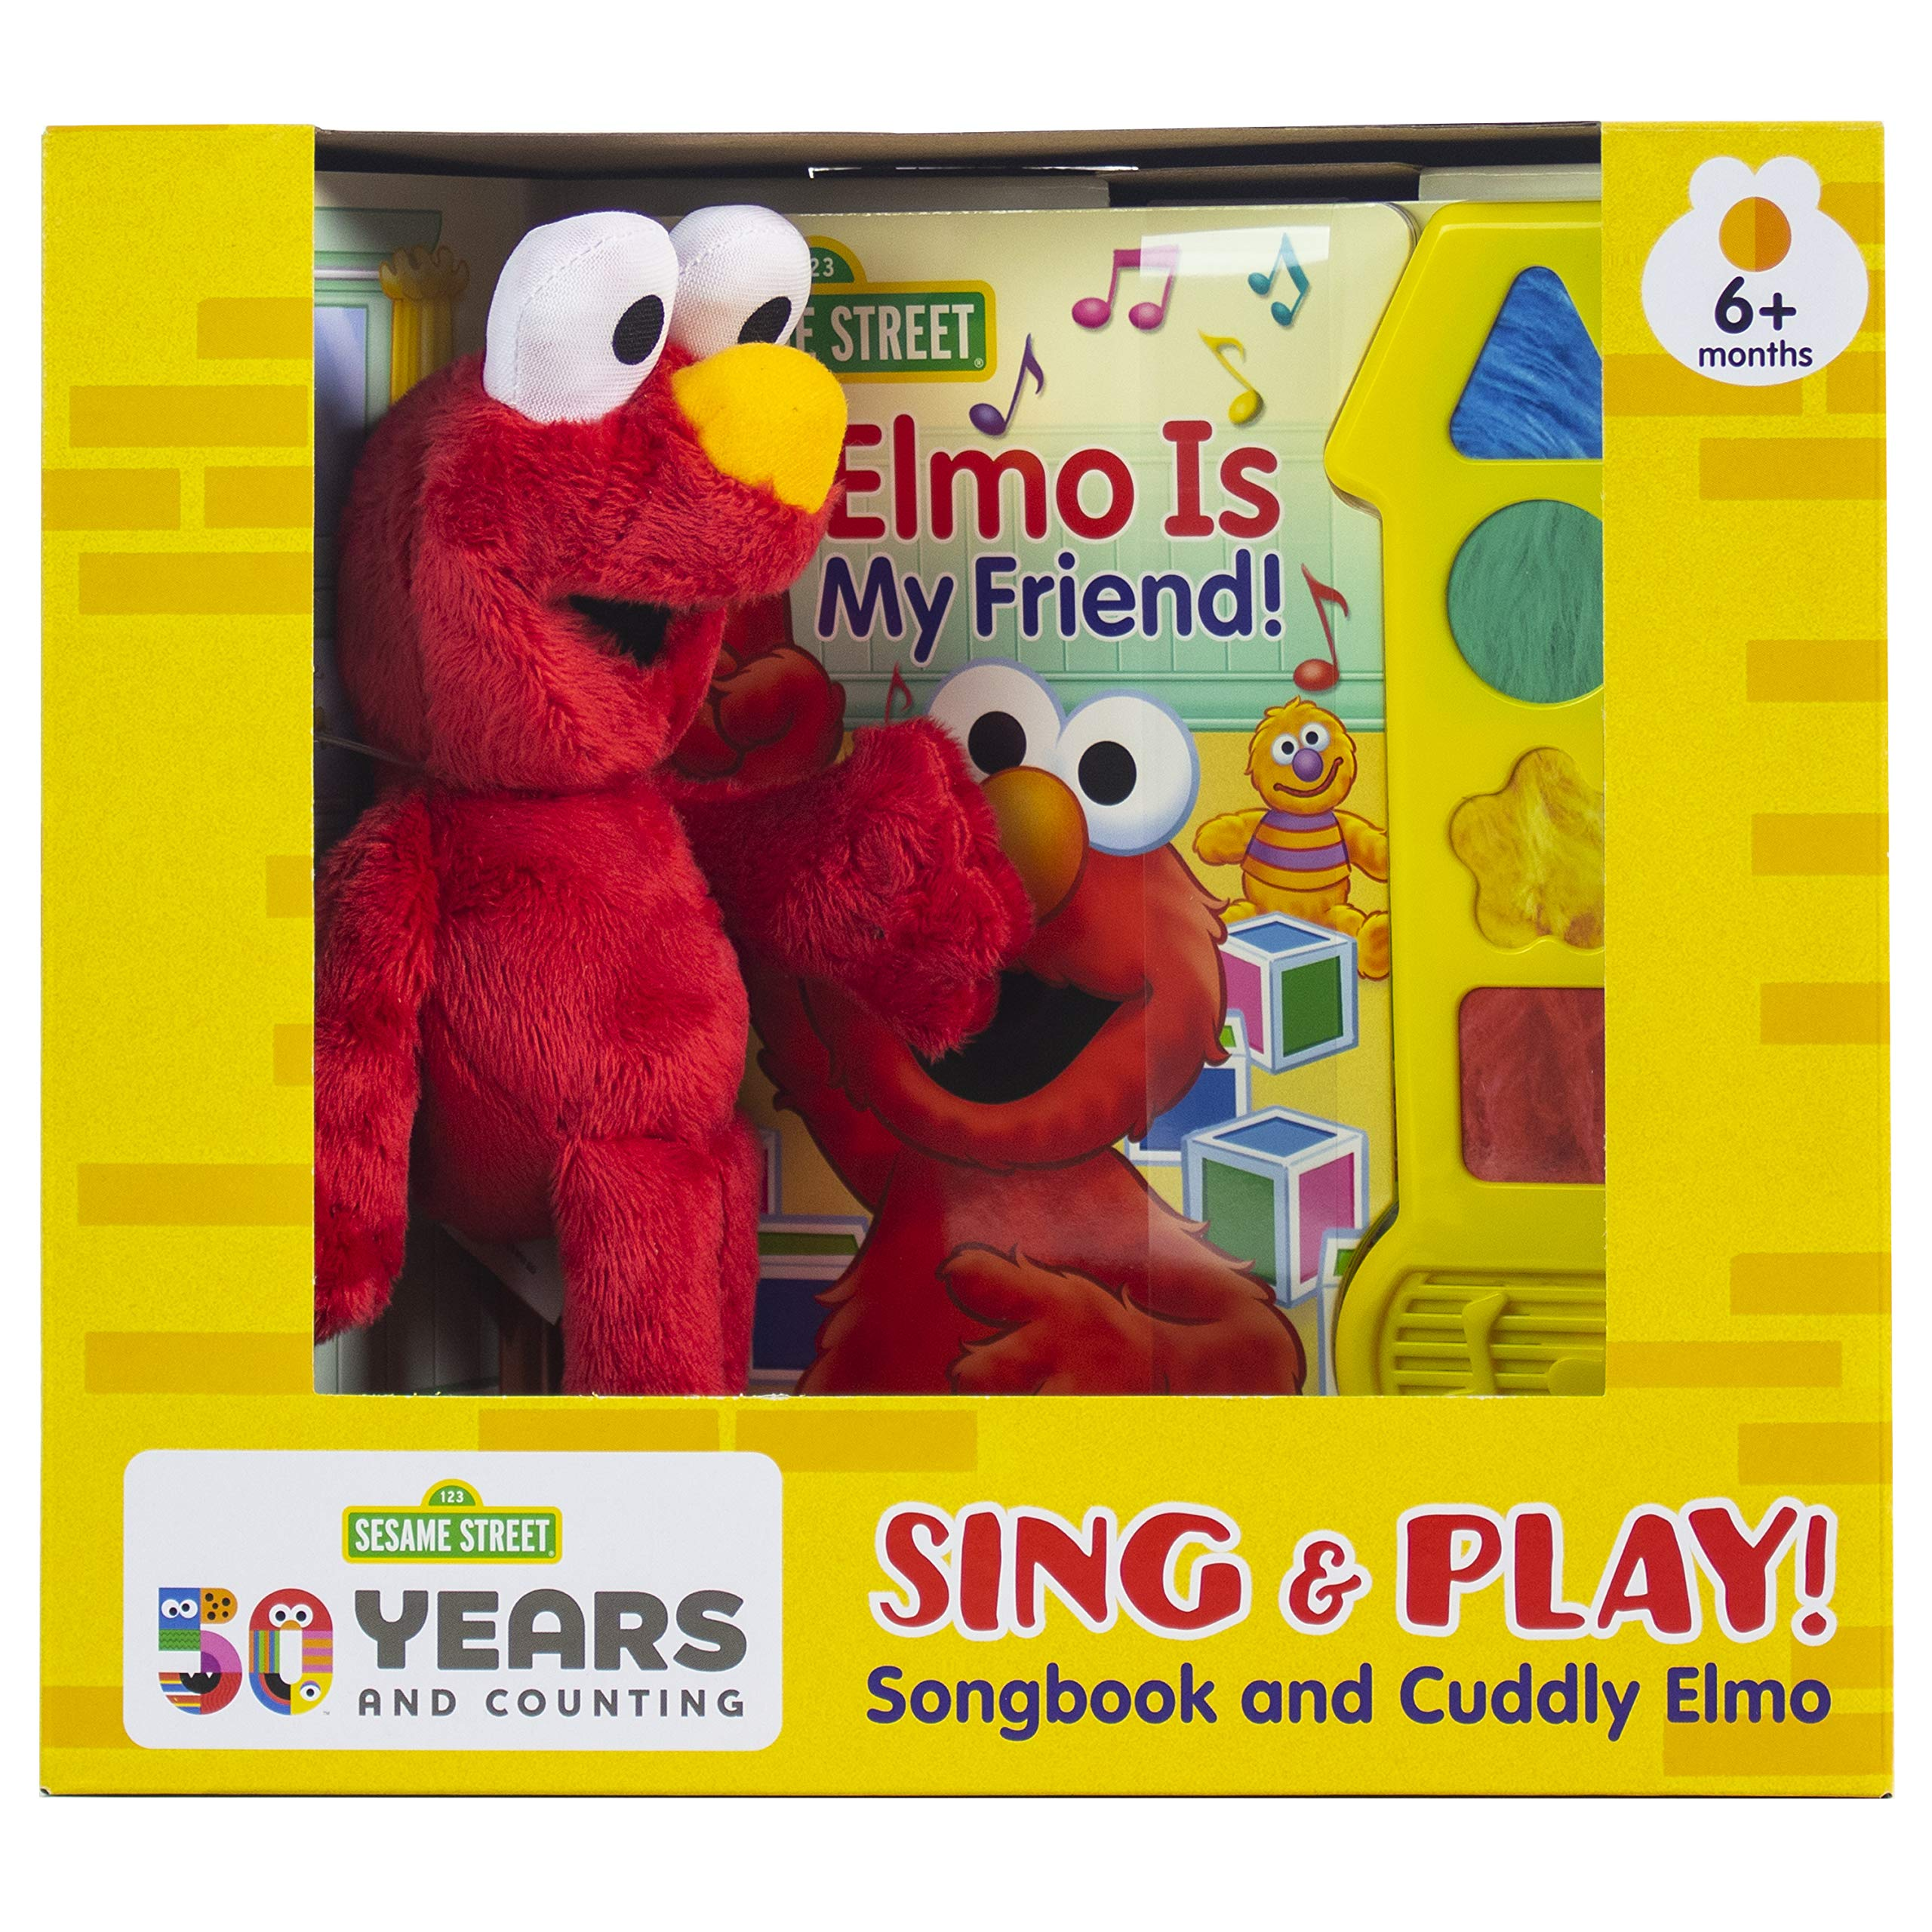 Elmo Play Zoe Says / A Rude Welcome For Abby New Girl On ...